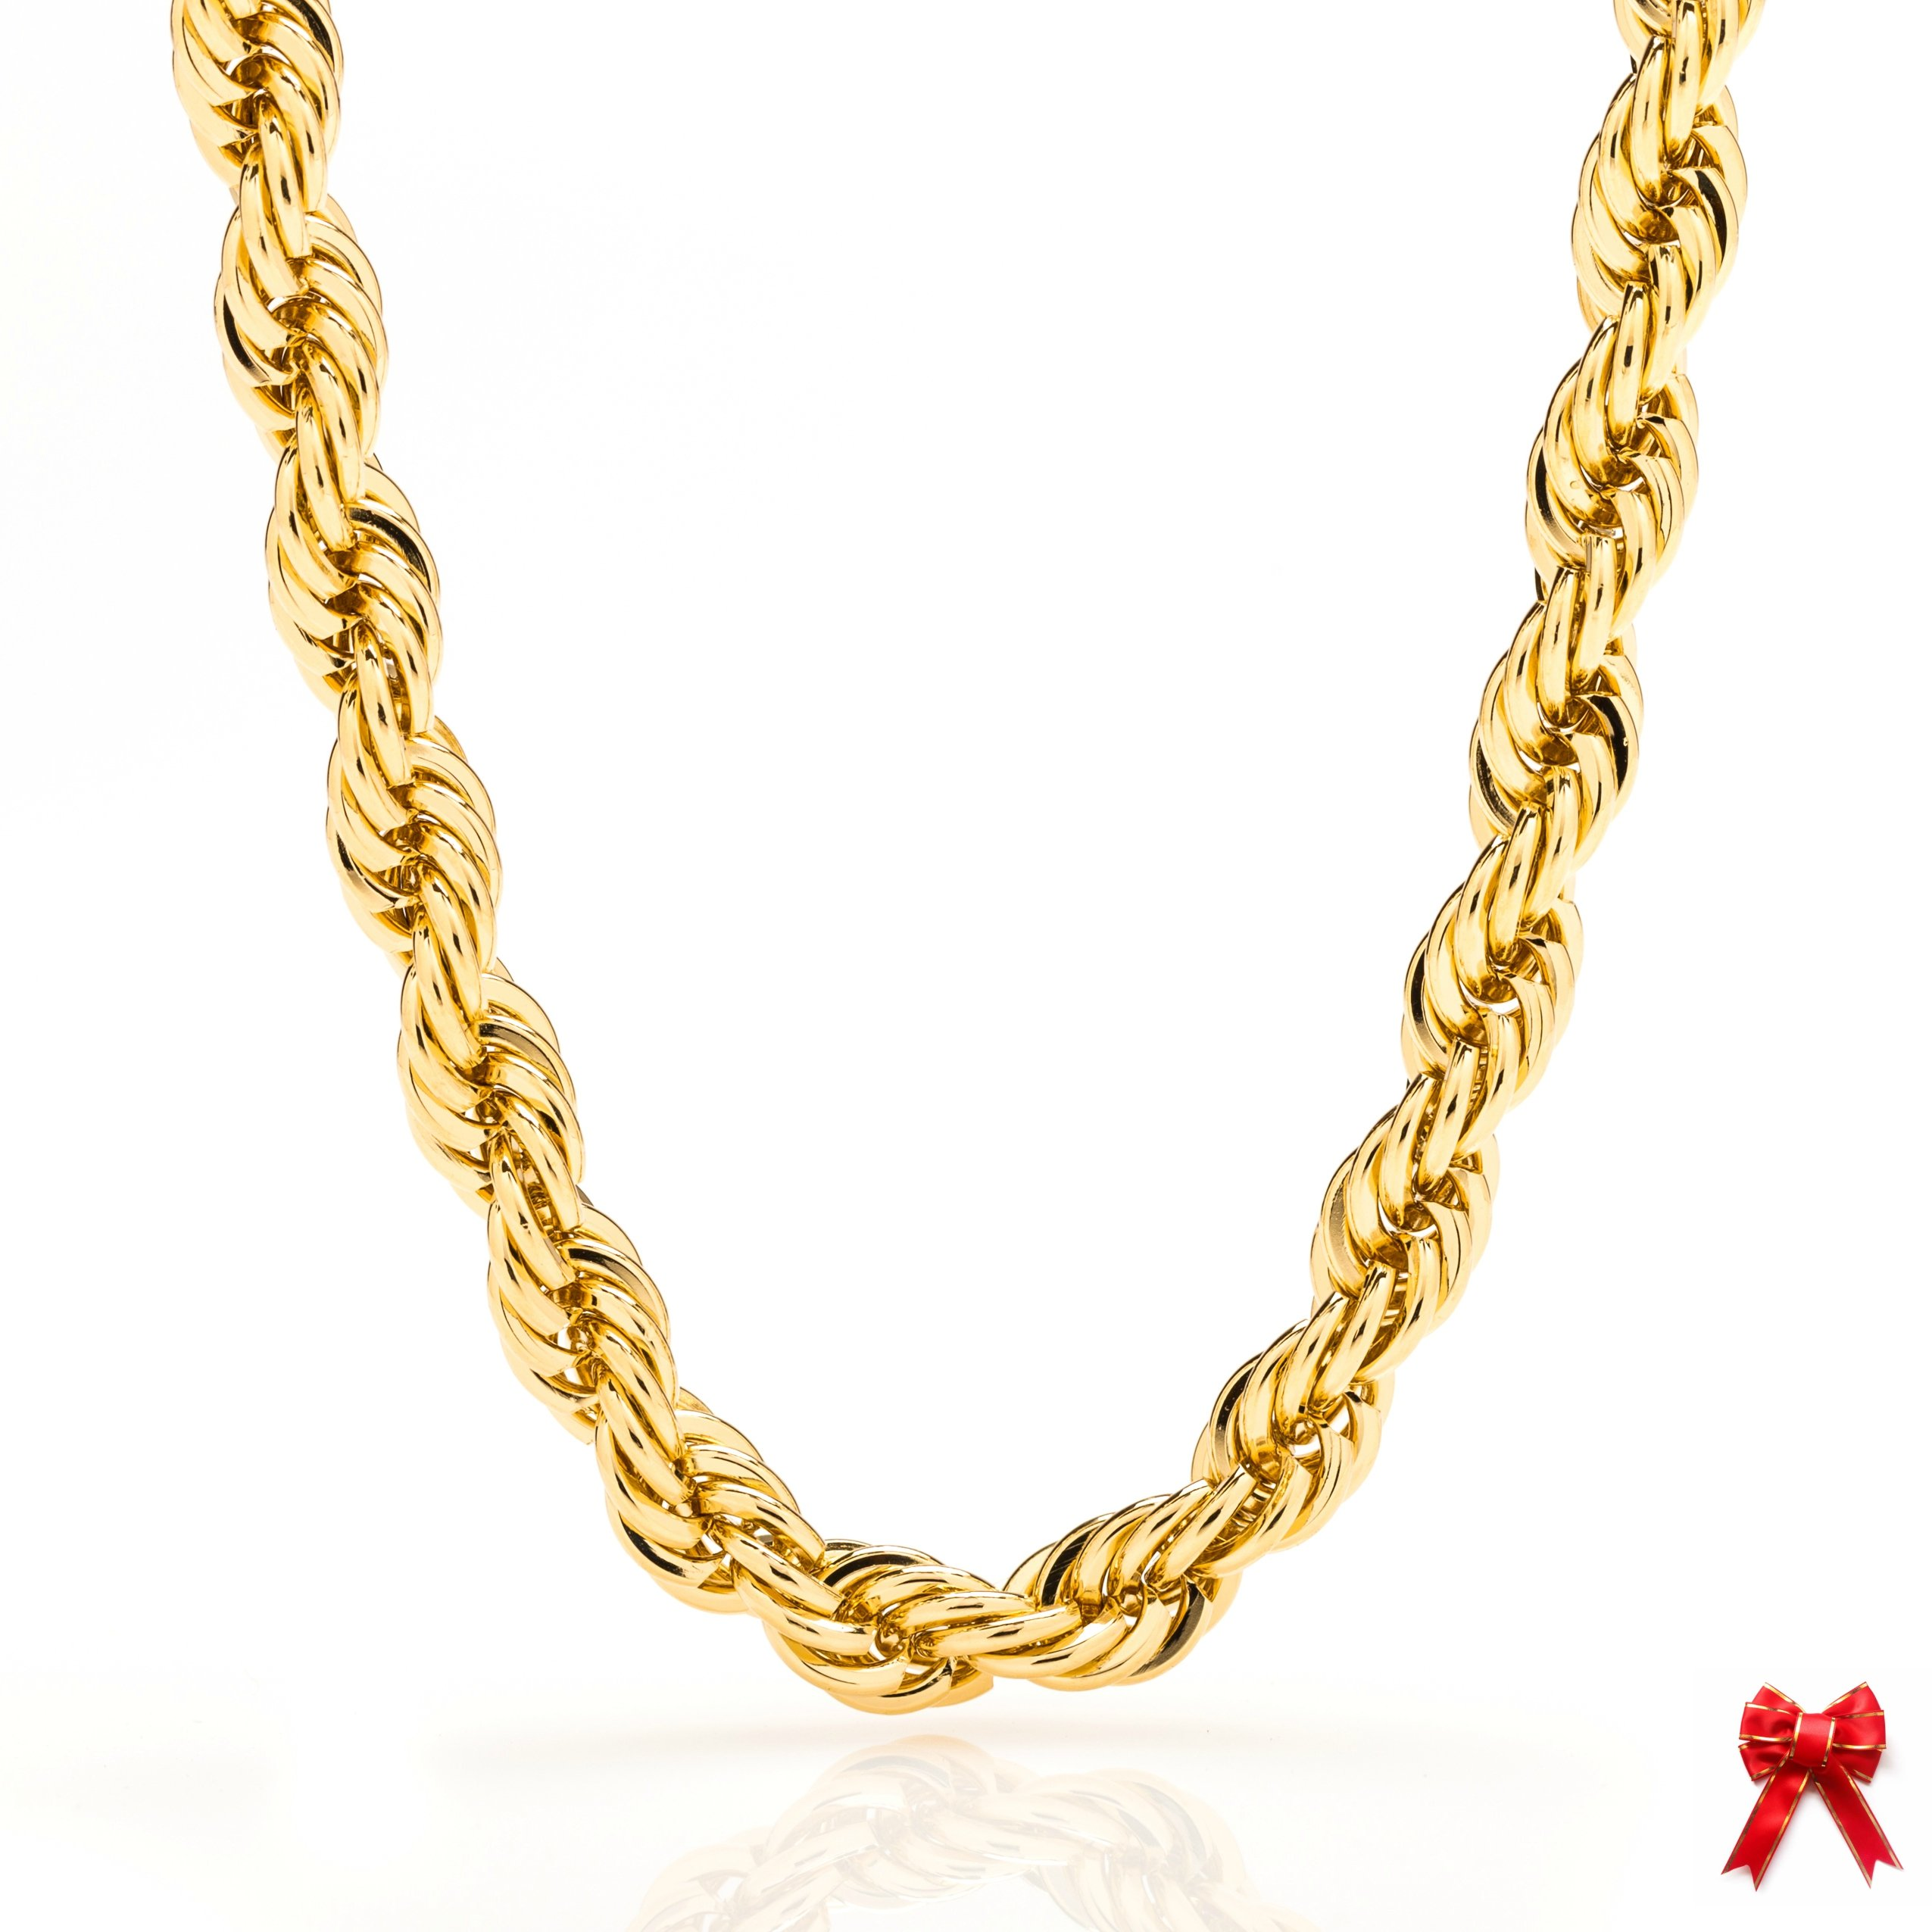 Lifetime Jewelry Rope Chain 7MM, 24K Diamond Cut Fashion Jewelry Necklaces in Yellow or White Gold Over Semi Precious Metals, Hip Hop or Classic, Comes with Box or Pouch, 24 Inches